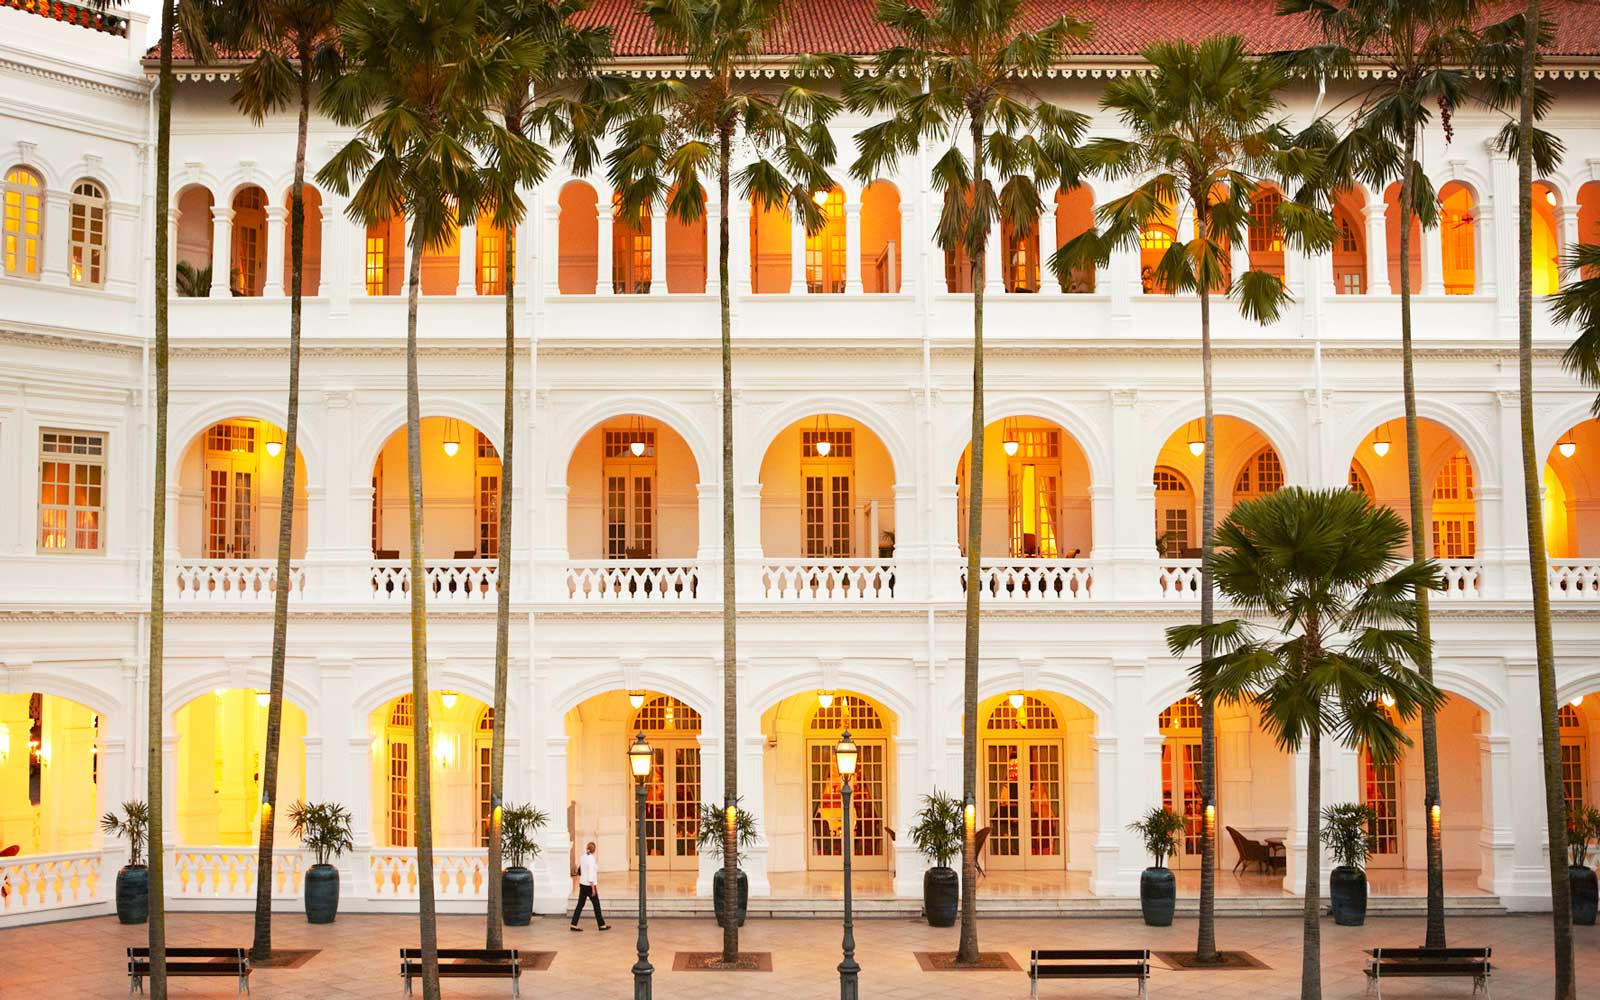 Facade of the Raffles Singapore